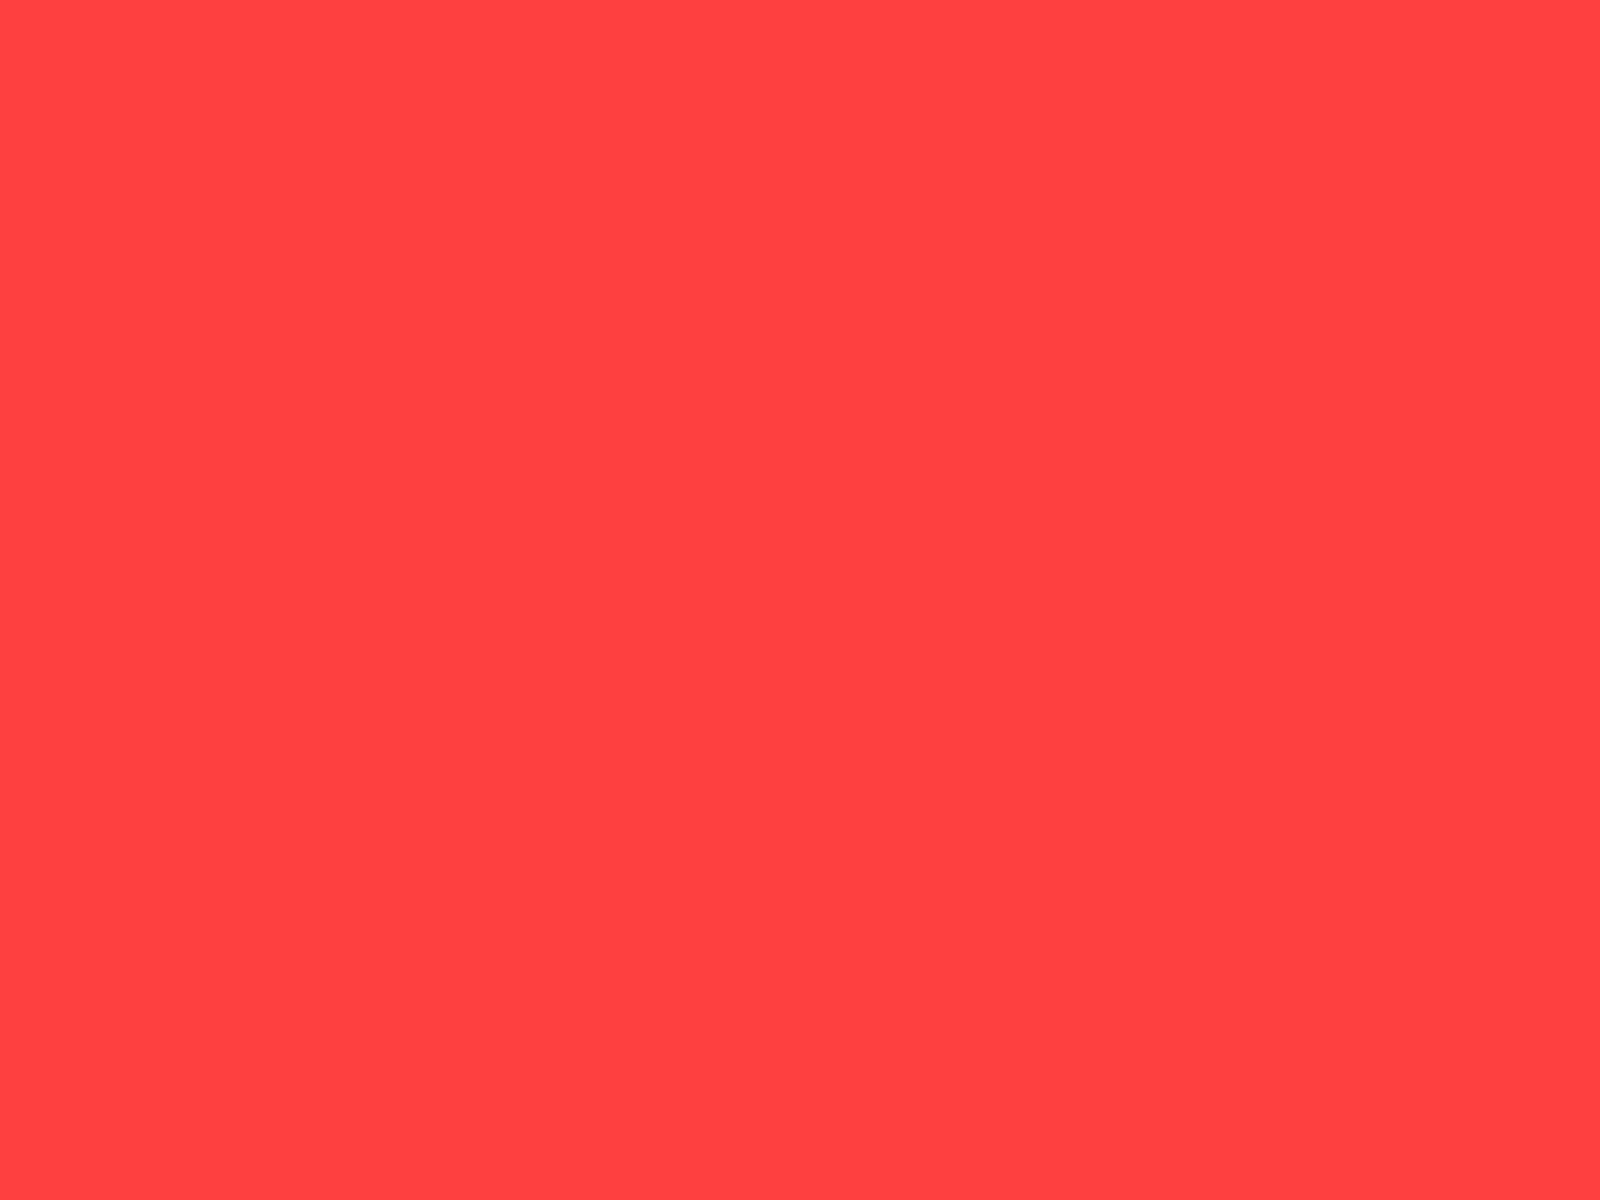 1600x1200 Coral Red Solid Color Background